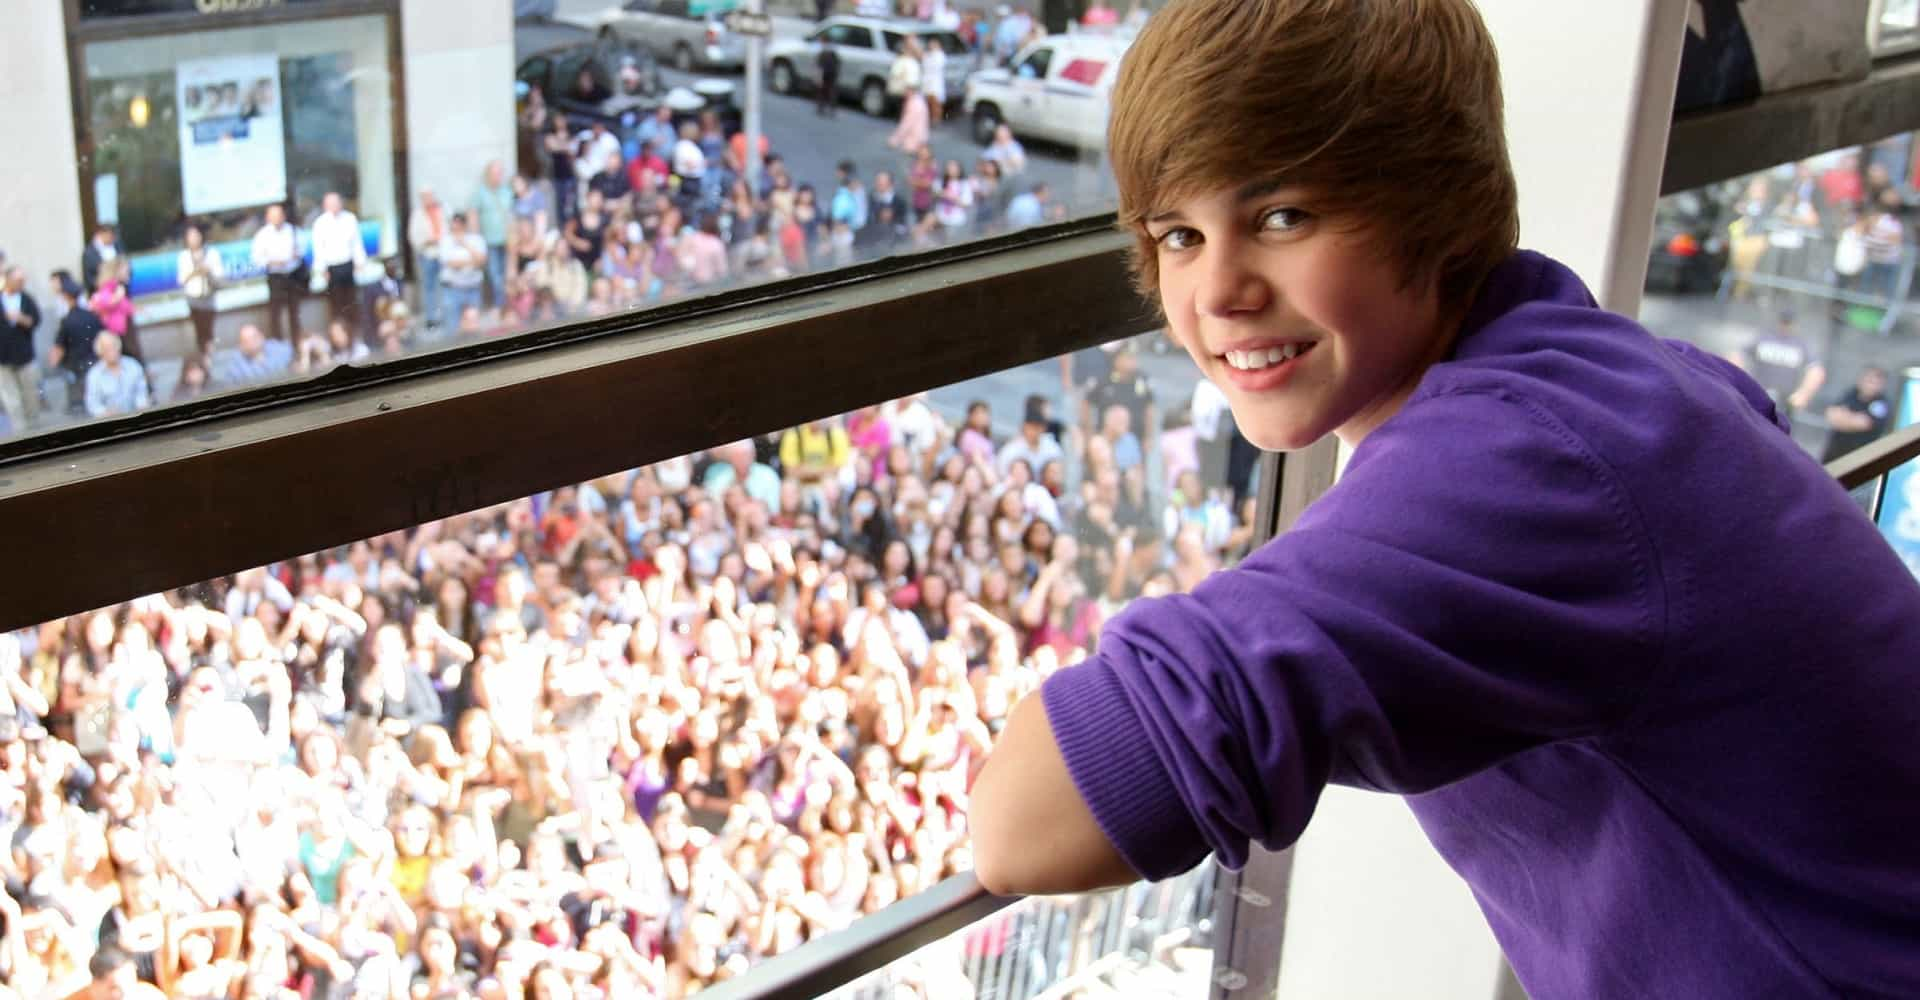 Beliebers help YouTube's 'Rewind' become most disliked video